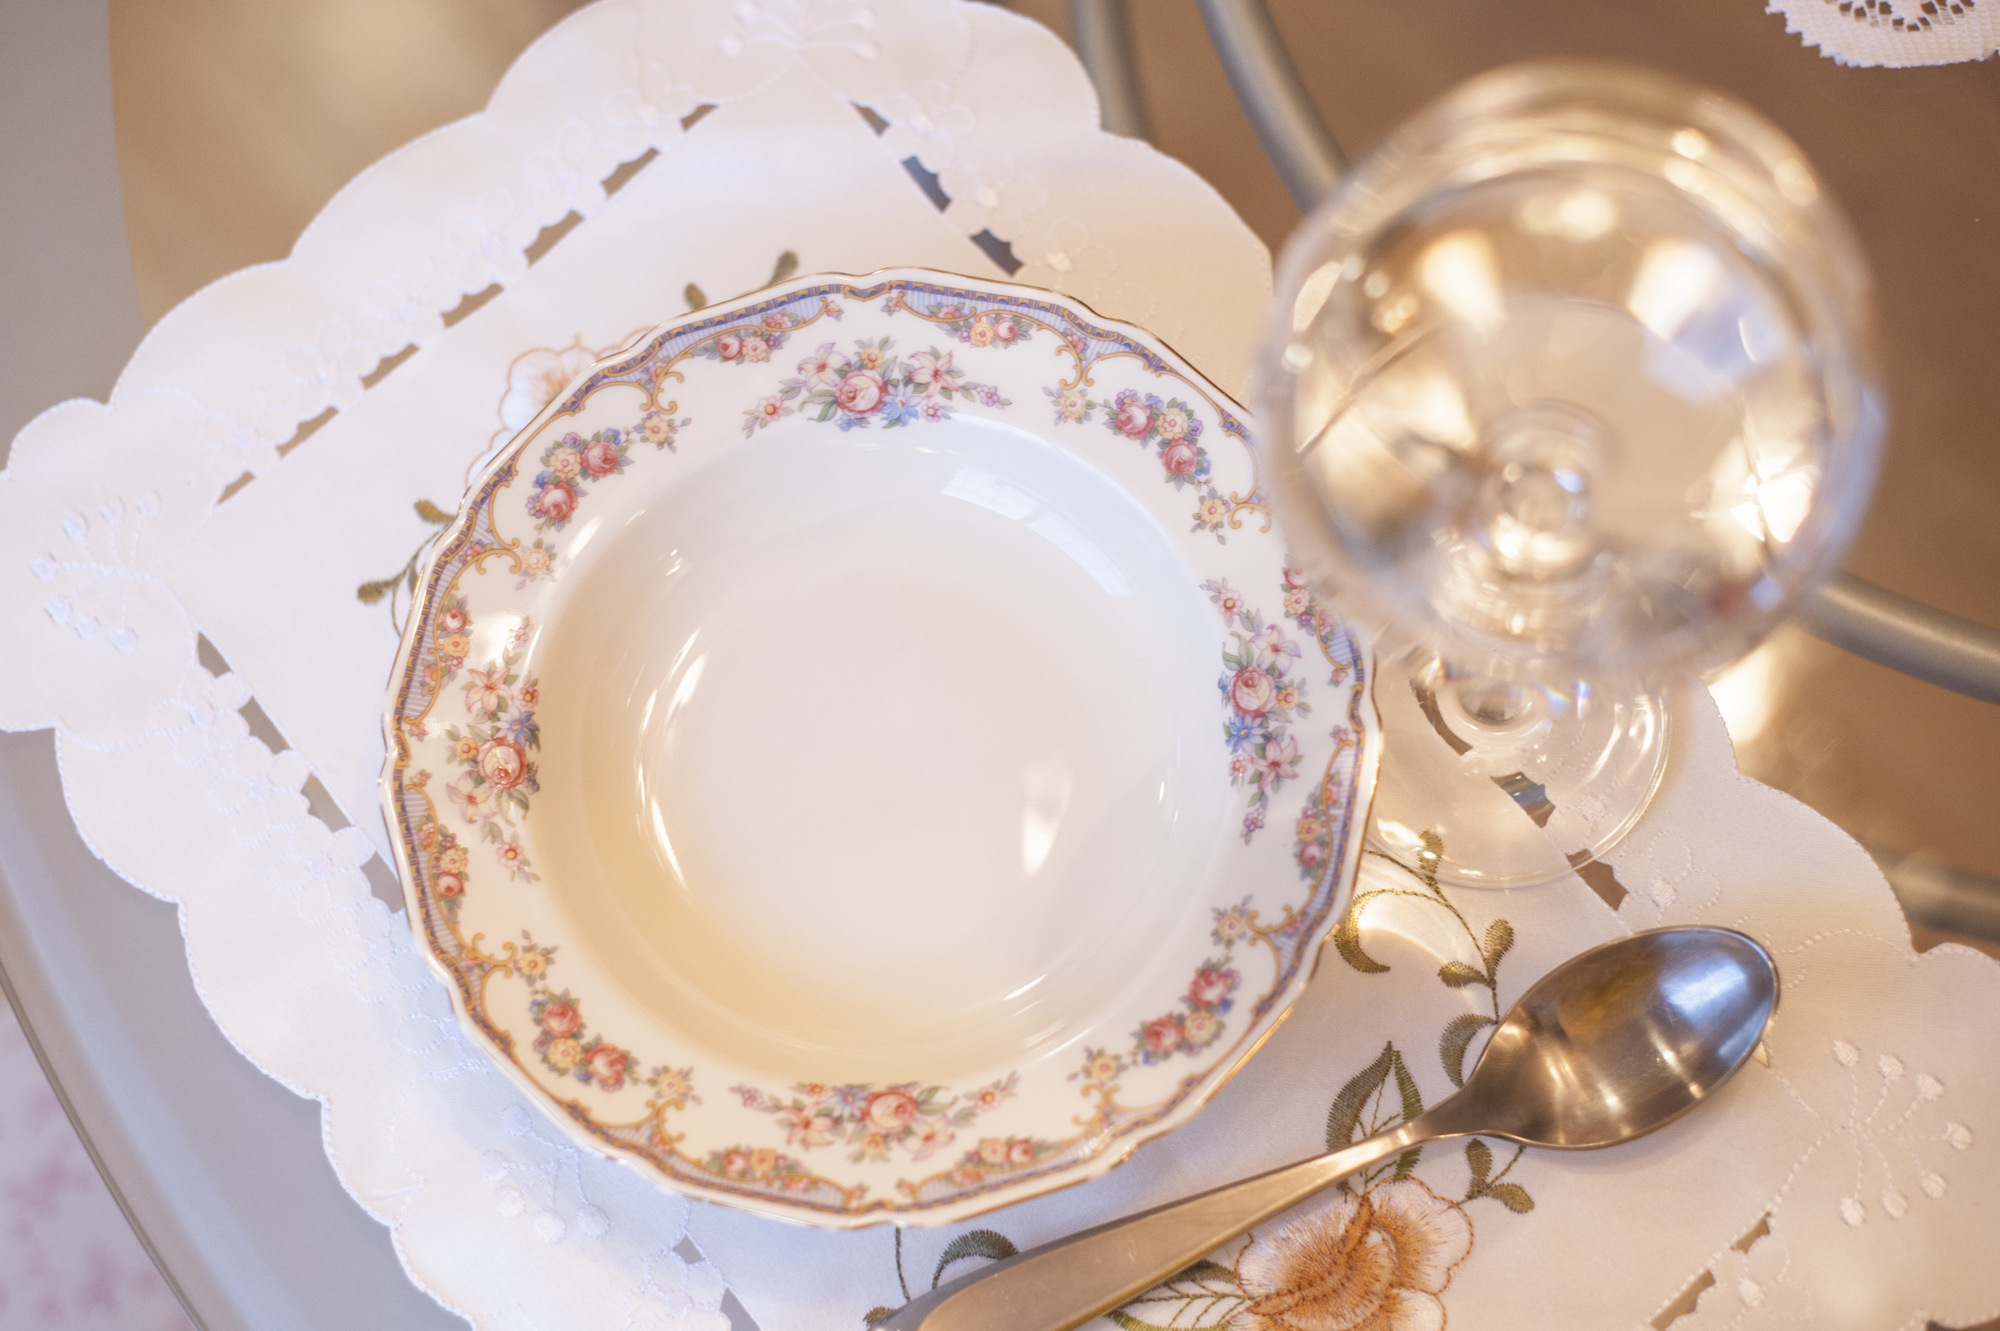 Grandma Edna's Thomas Ivory Bavarian China - she bought this for herself in the early 1940s.